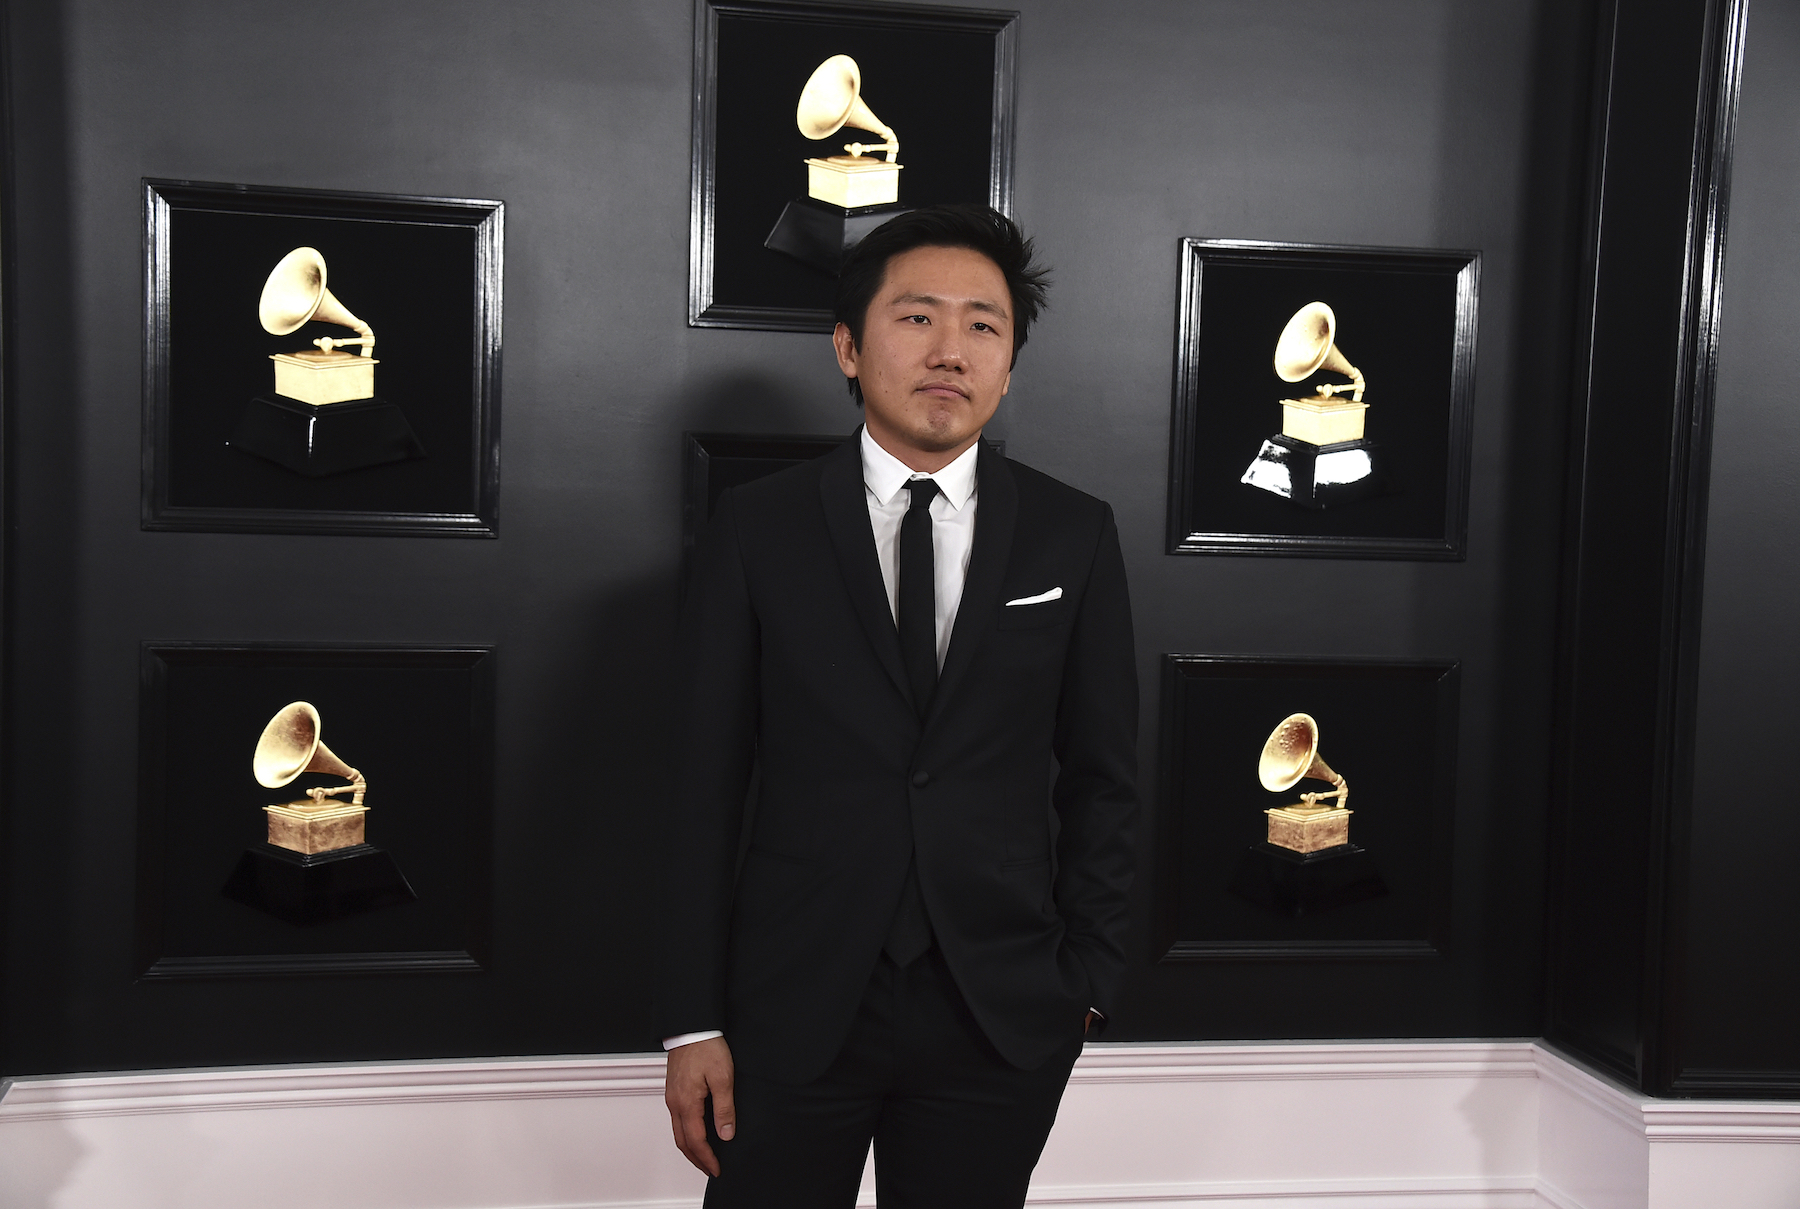 "<div class=""meta image-caption""><div class=""origin-logo origin-image ap""><span>AP</span></div><span class=""caption-text"">Hiro Murai arrives at the 61st annual Grammy Awards at the Staples Center on Sunday, Feb. 10, 2019, in Los Angeles. (Jordan Strauss/Invision/AP)</span></div>"